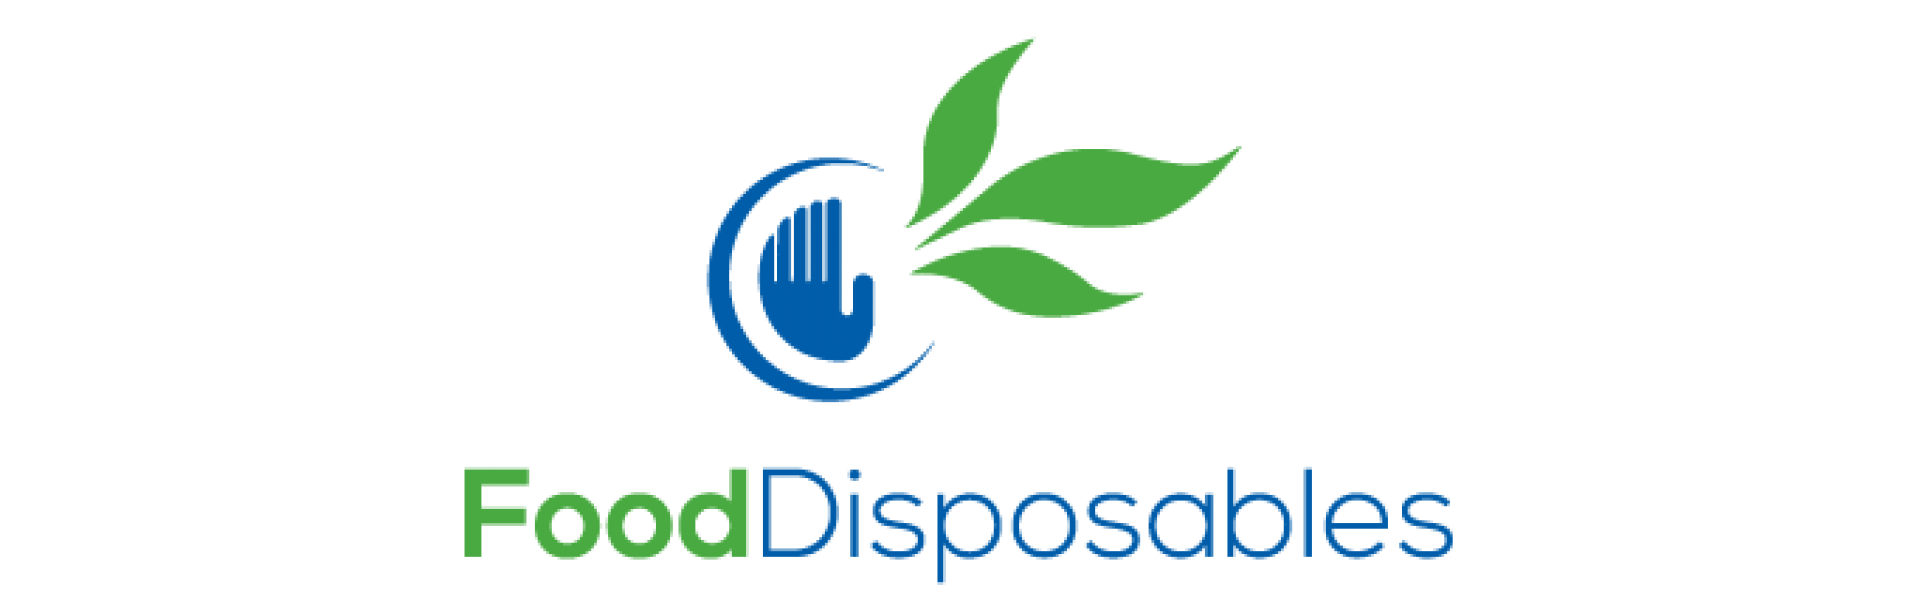 Fooddisposables